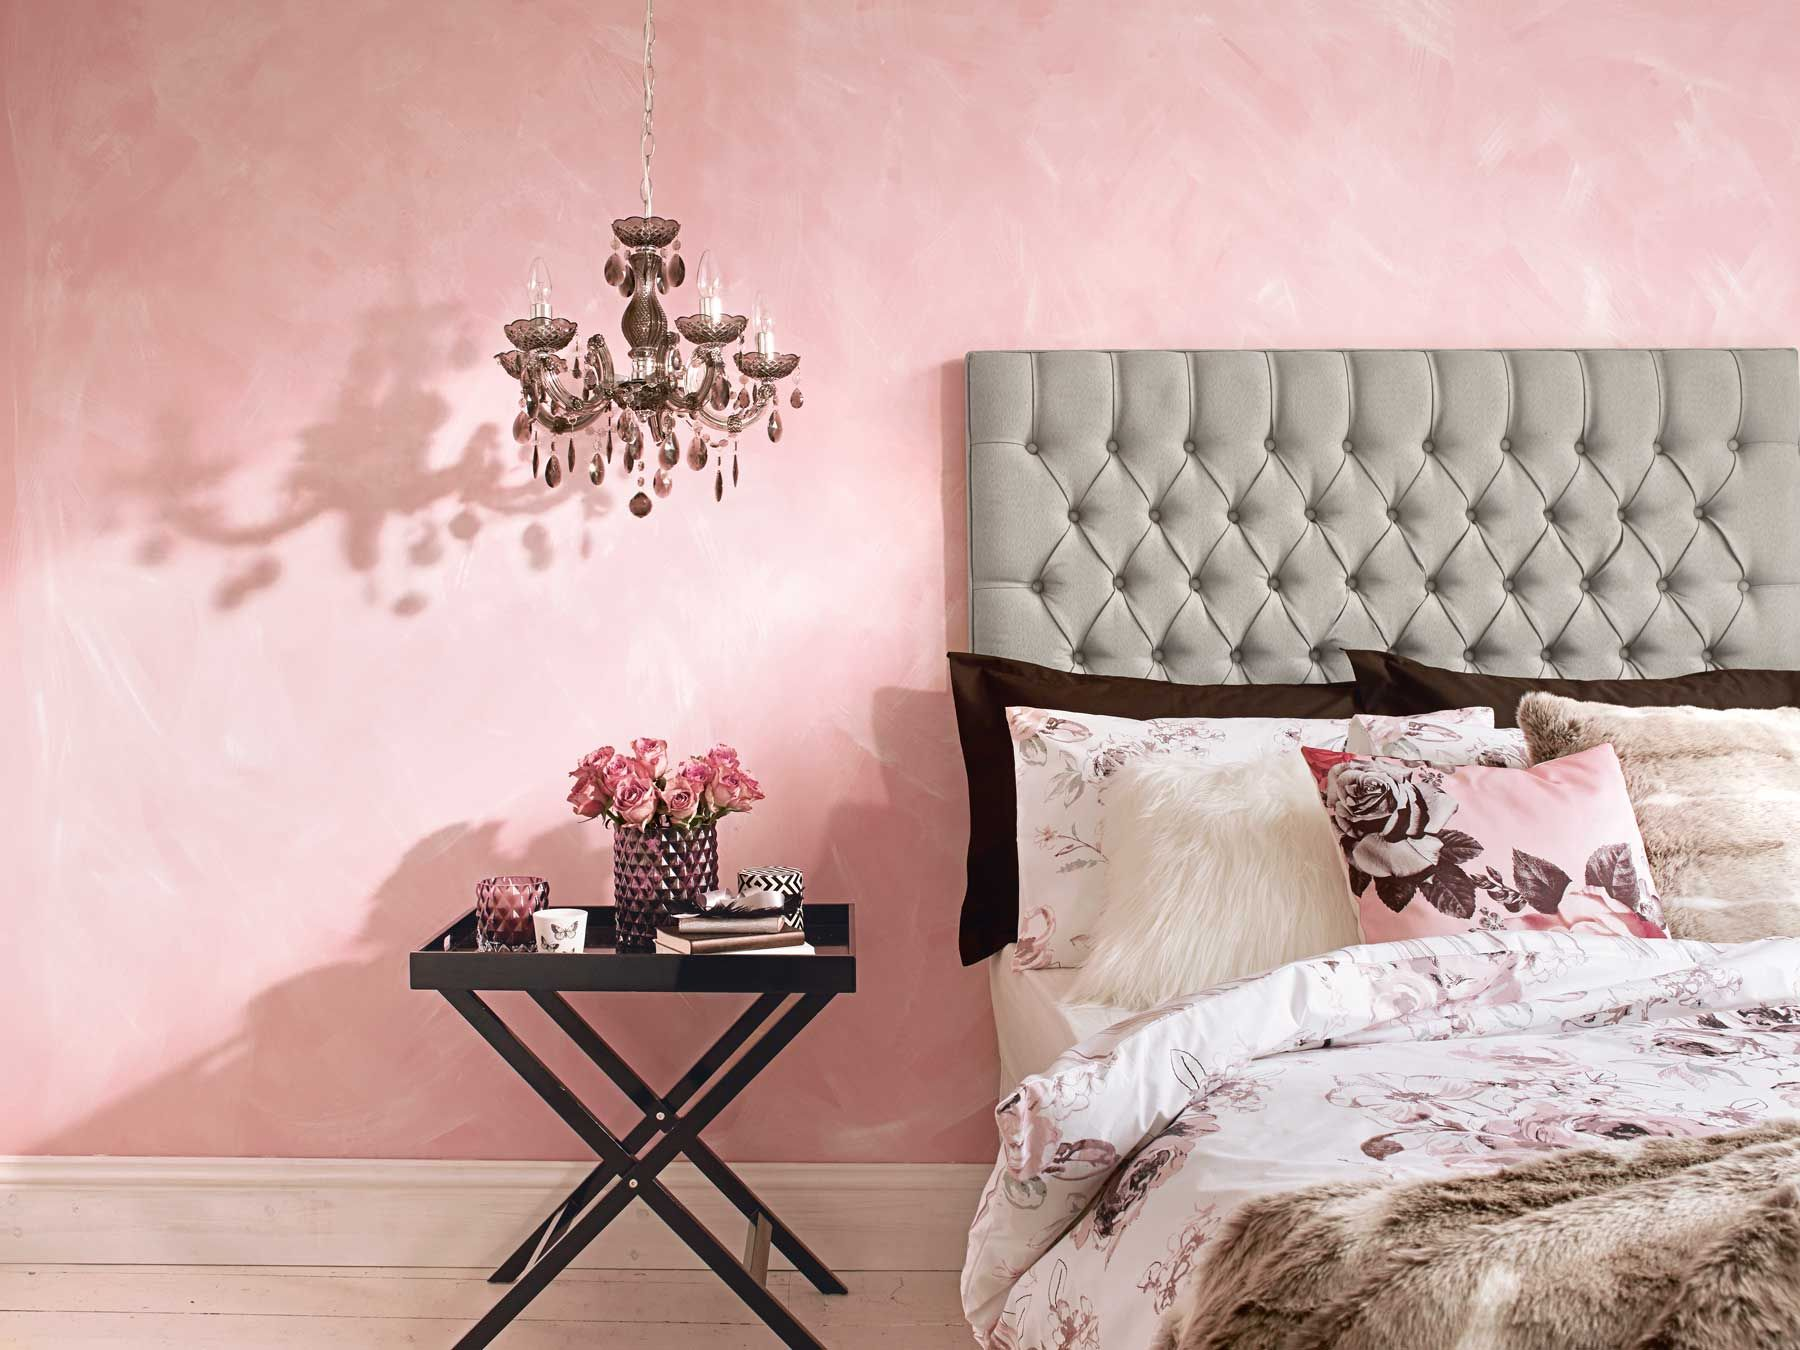 Pastel pink bedroom bedding ideas spring and summer bedroom pastel pink bedroom bedding ideas spring and summer bedroom interior inspiration 2015 chandelier arubaitofo Image collections